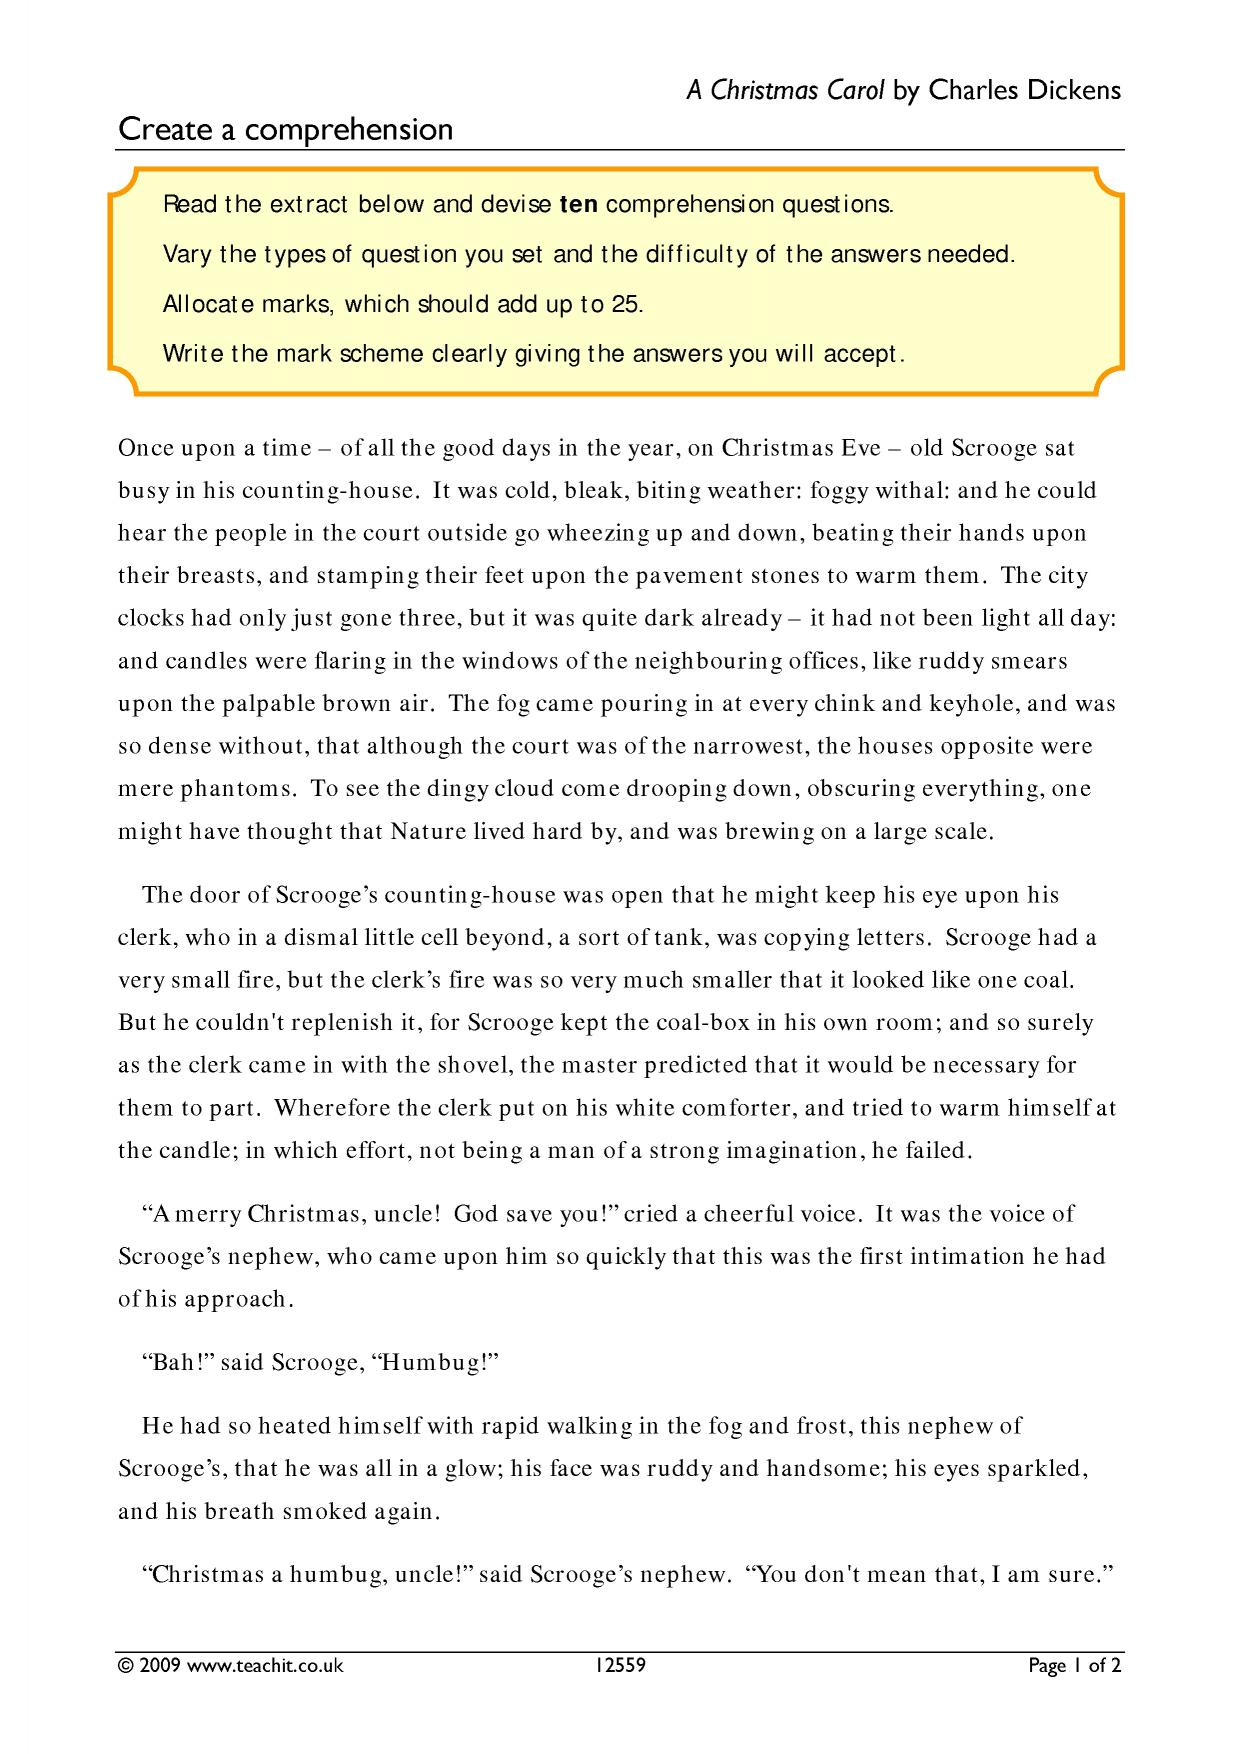 Create a comprehension - A Christmas Carol by Charles Dickens - Home page